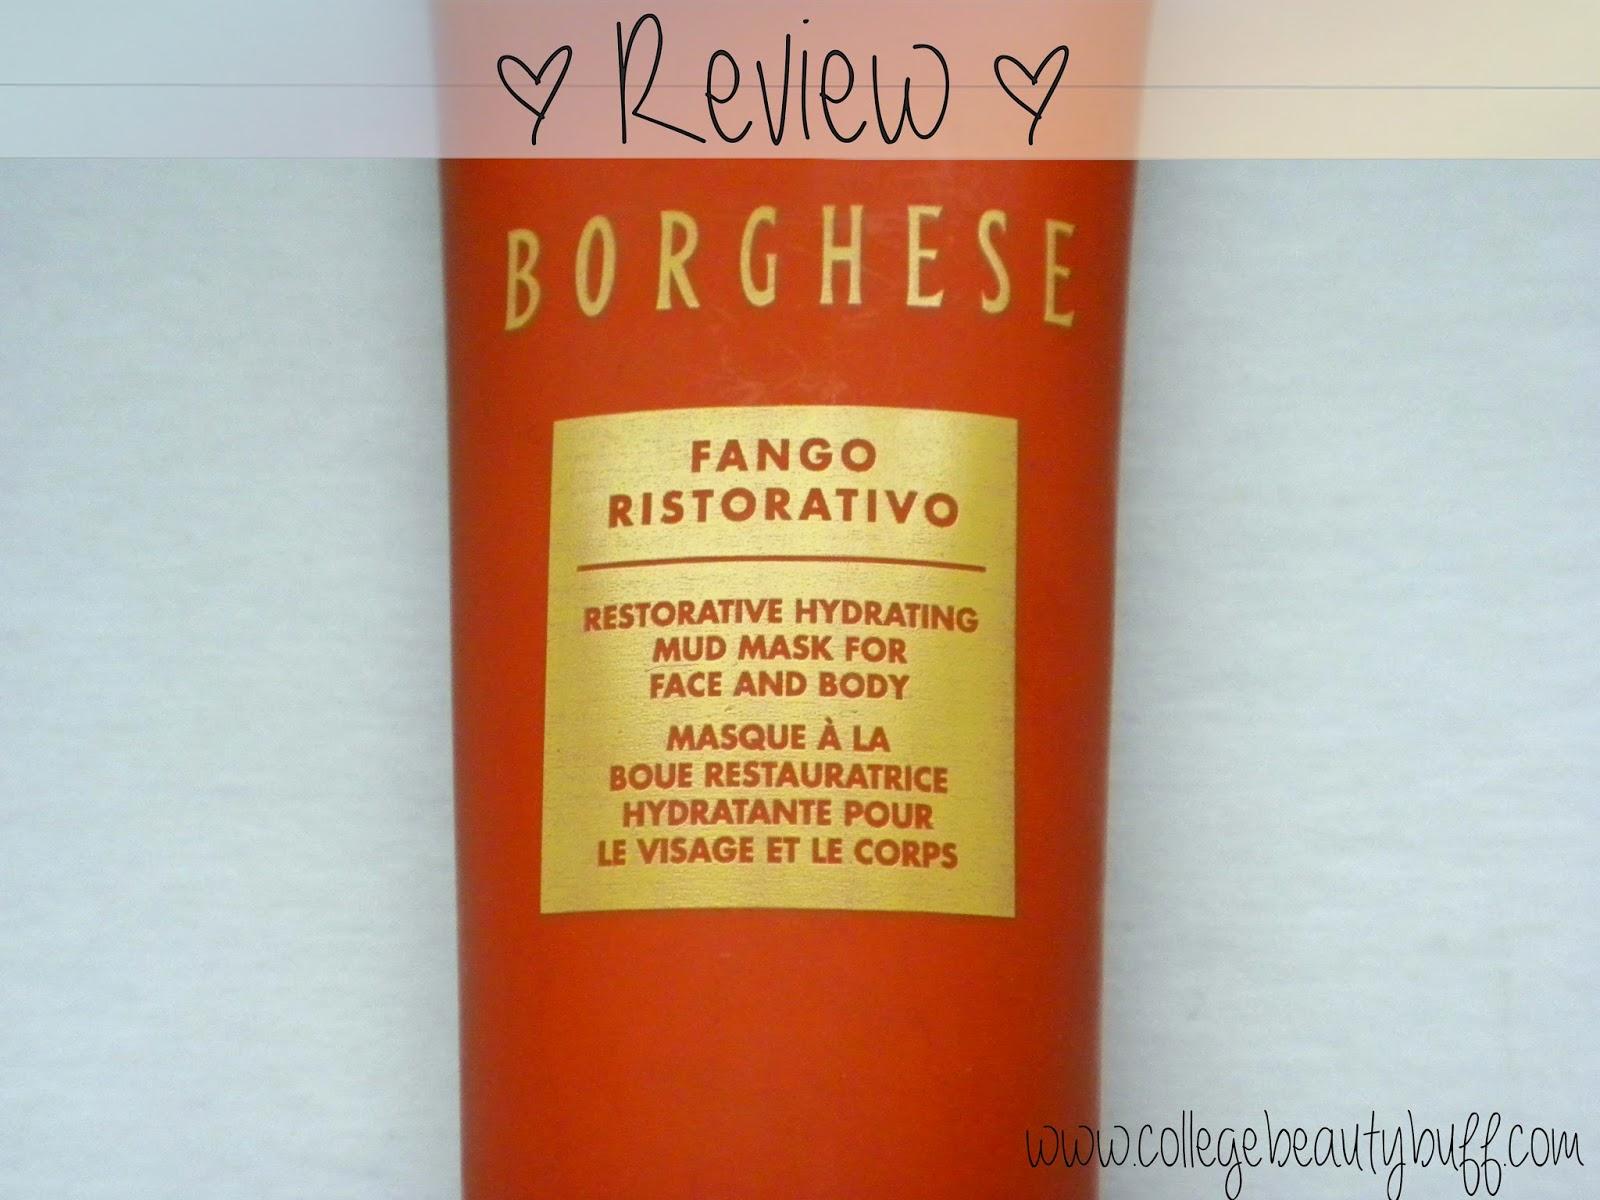 Review: Borghese Fango Ristorativo Mud Mask